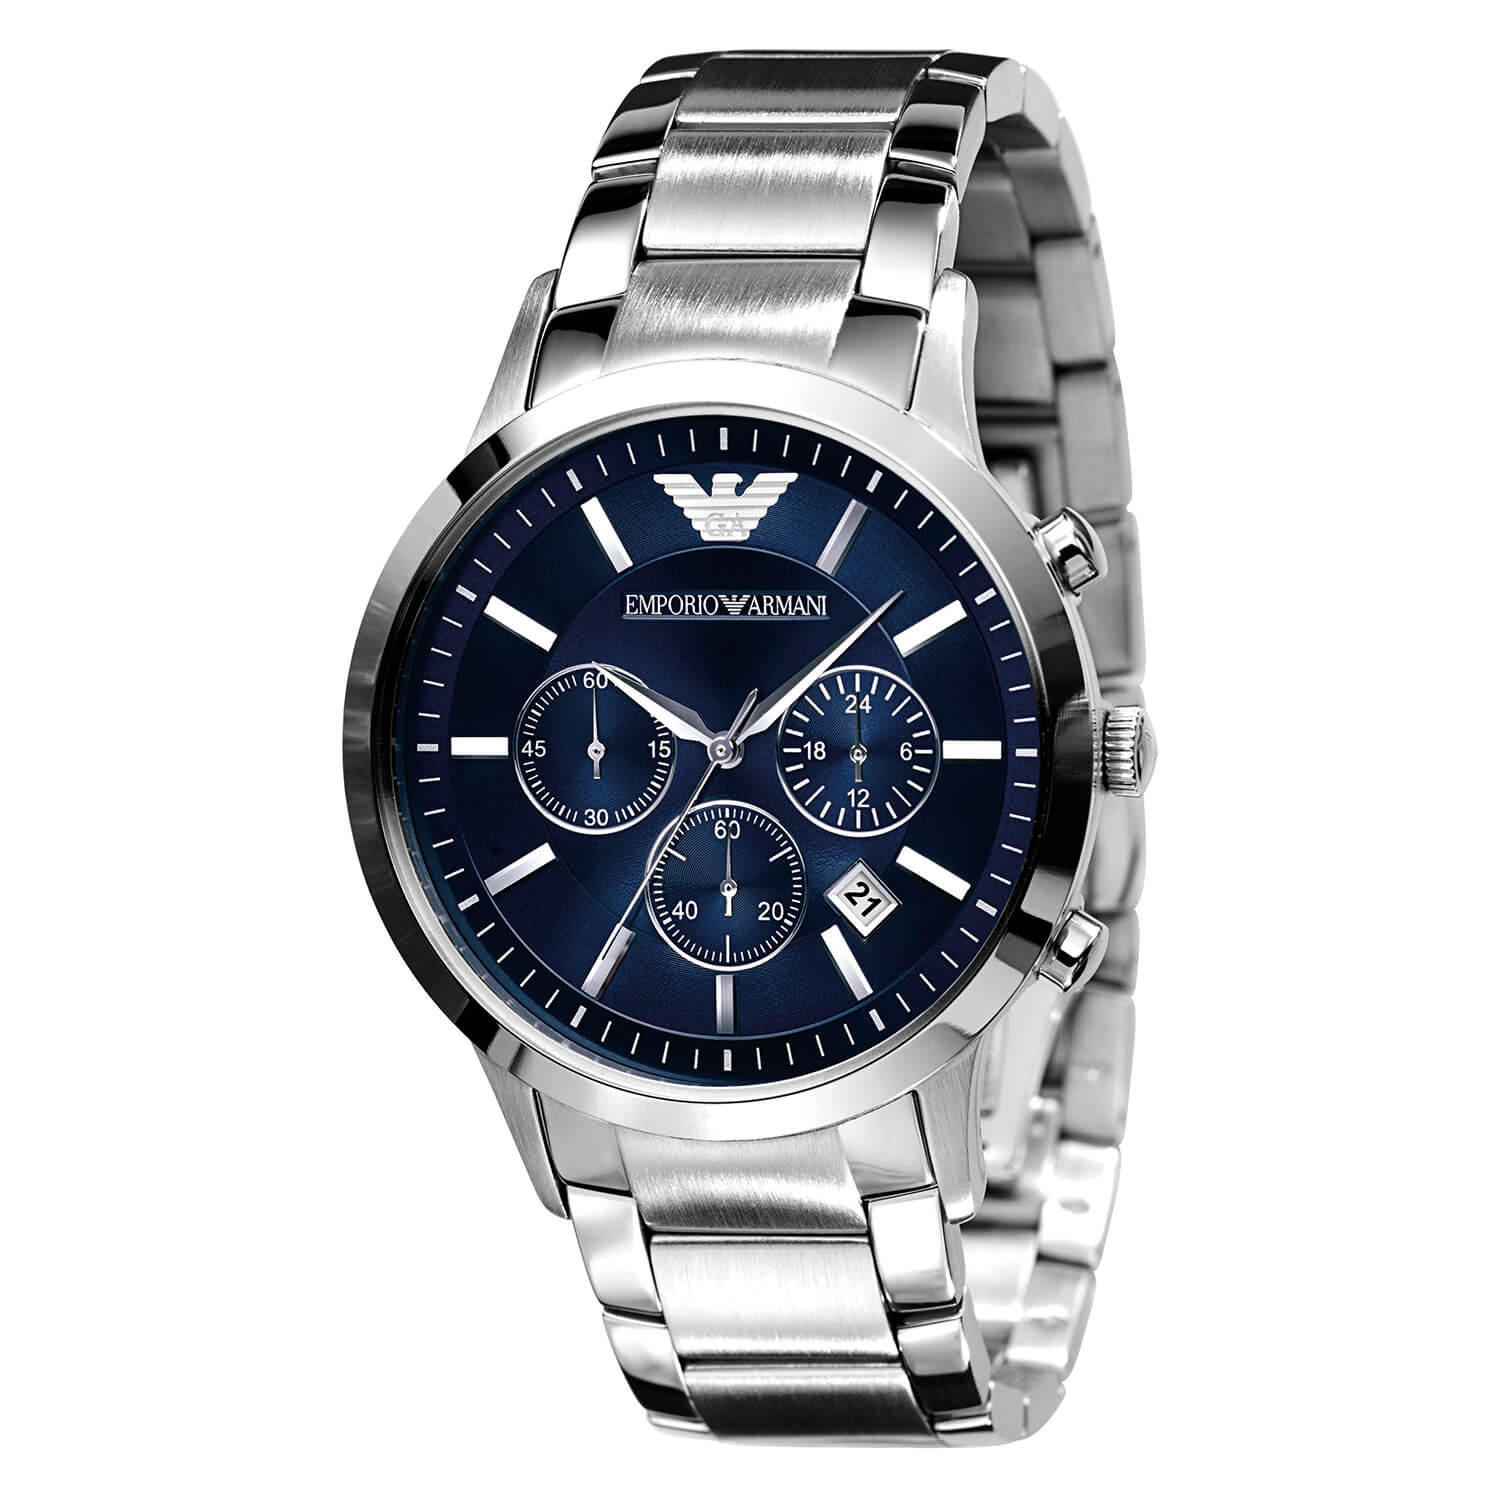 Emporio Armani Classic men's chronograph blue dial stainless steel bracelet watch